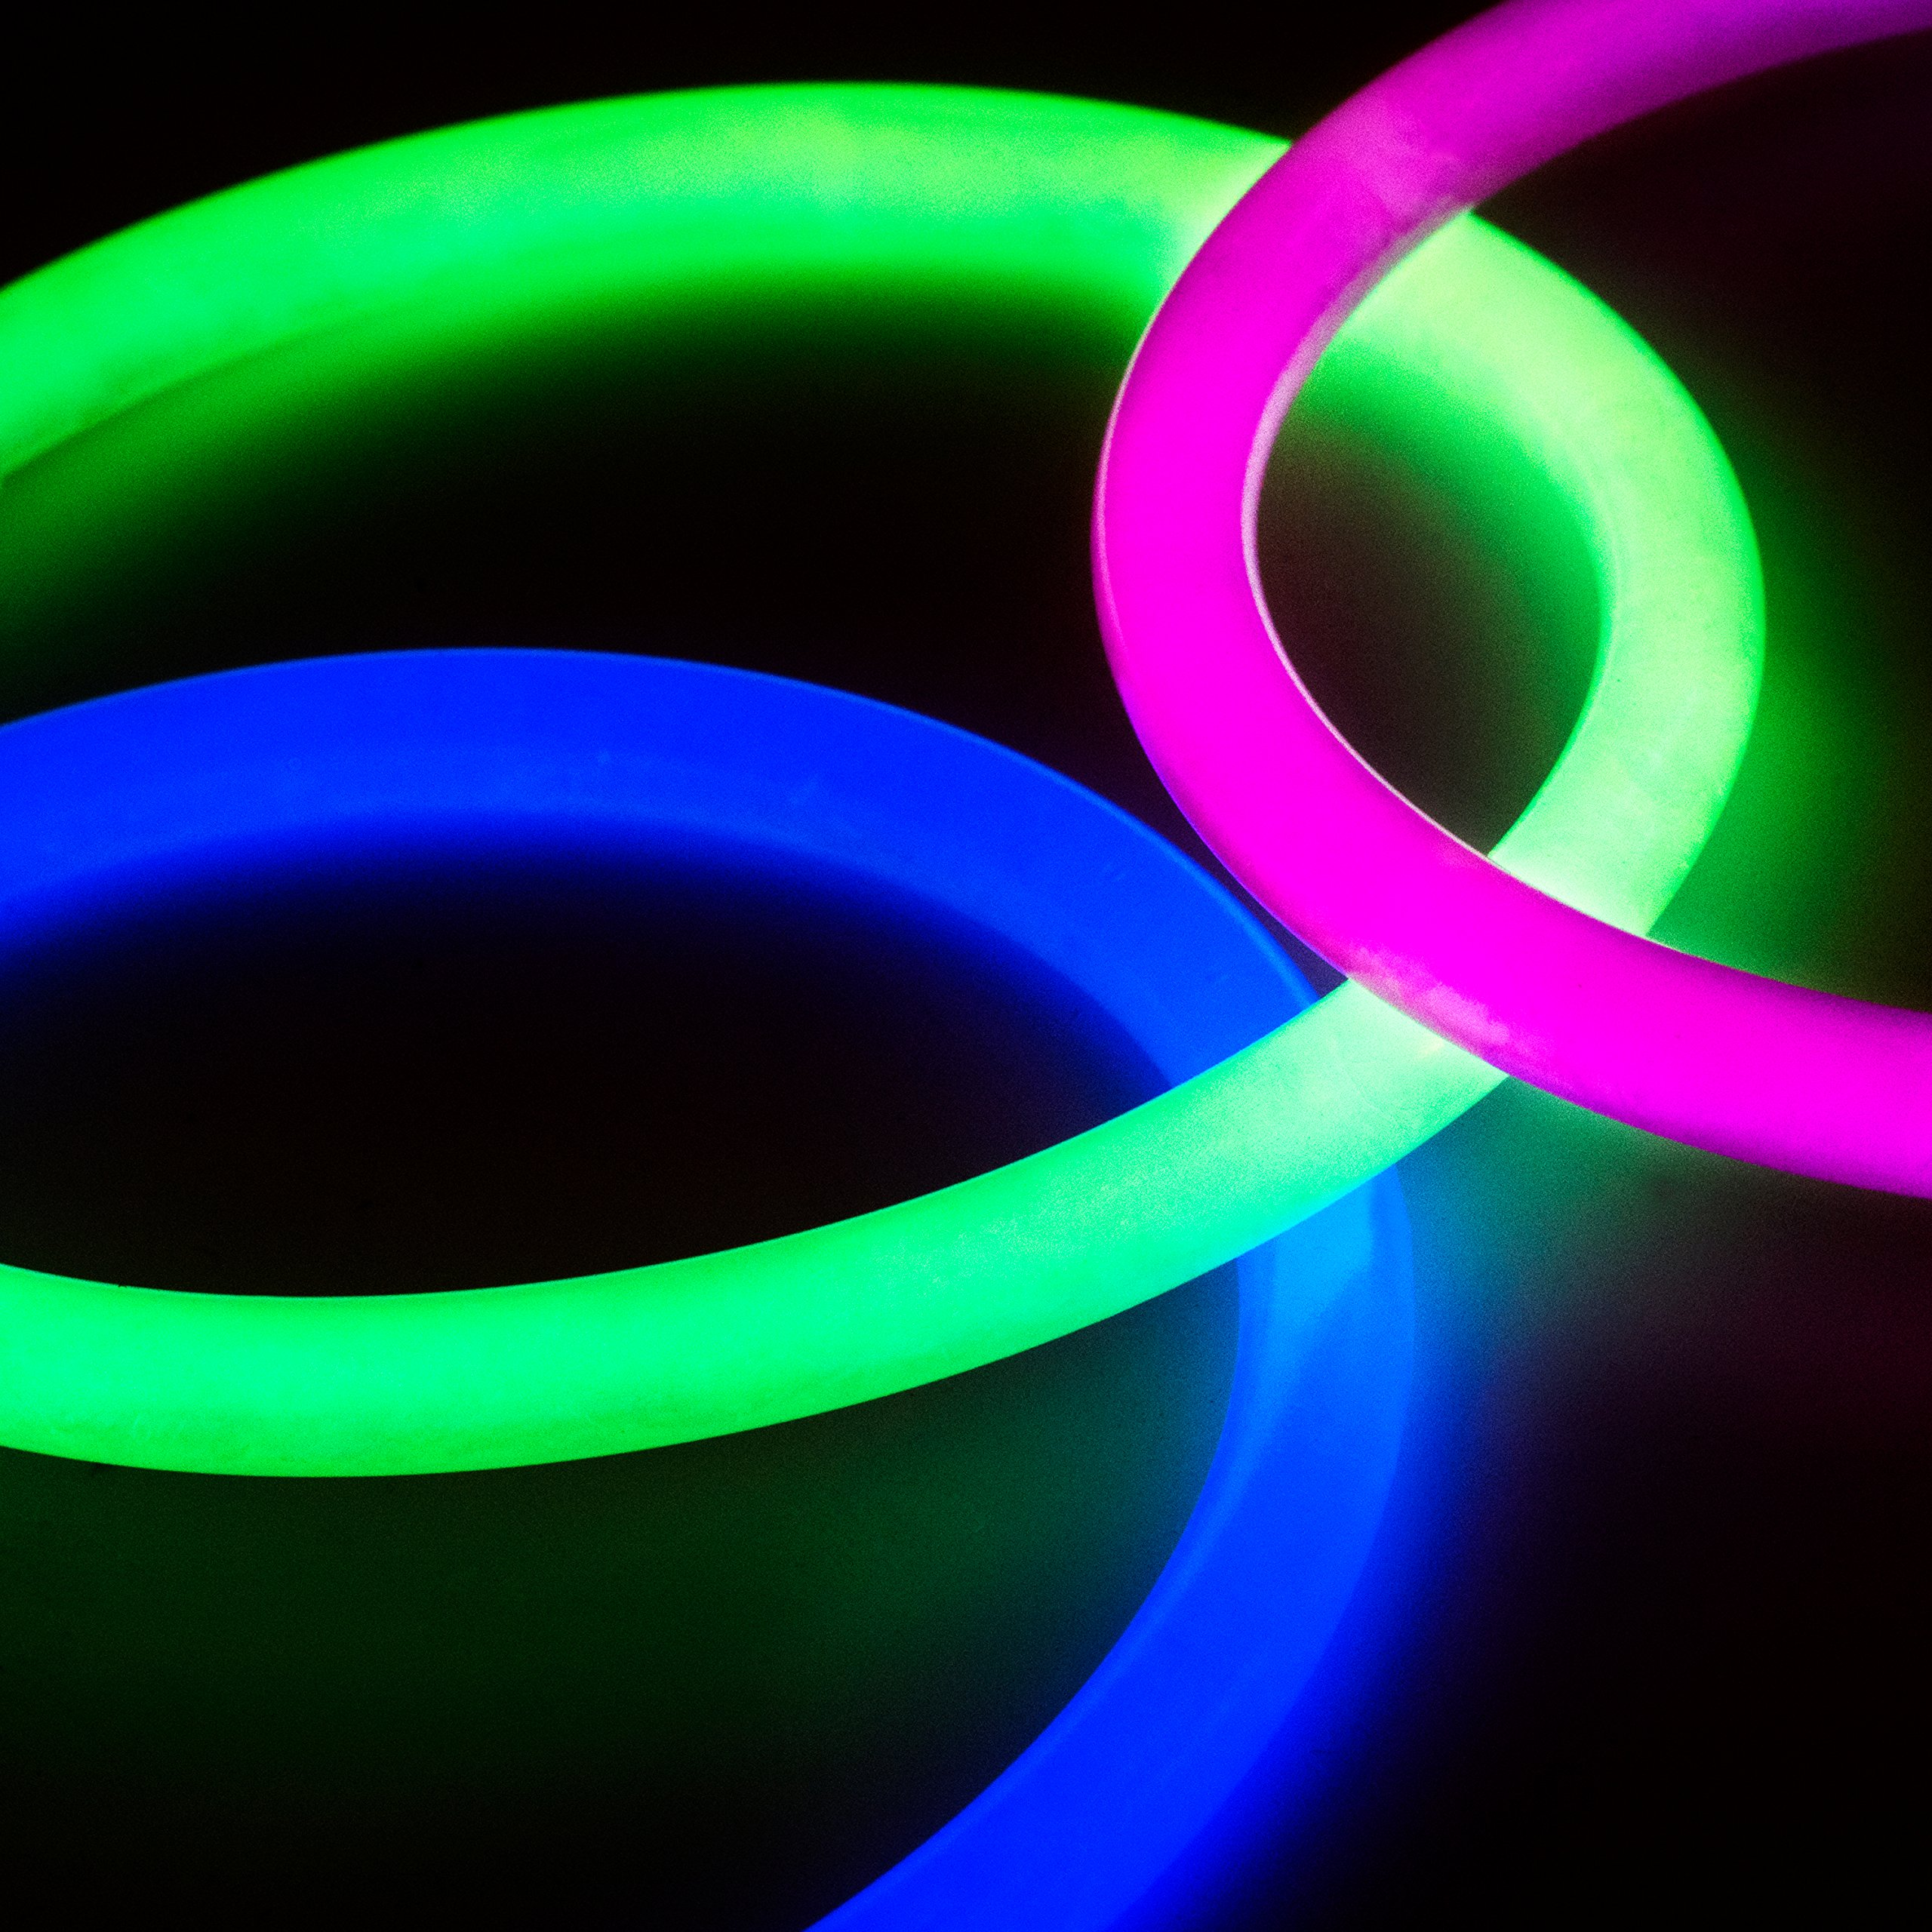 Glow Sticks Bulk Party Favors 400pk - 8'' Glow in the Dark Party Supplies, Light Sticks Neon Party Glow Necklaces and Bracelets for Kids or Adults by PartySticks (Image #6)